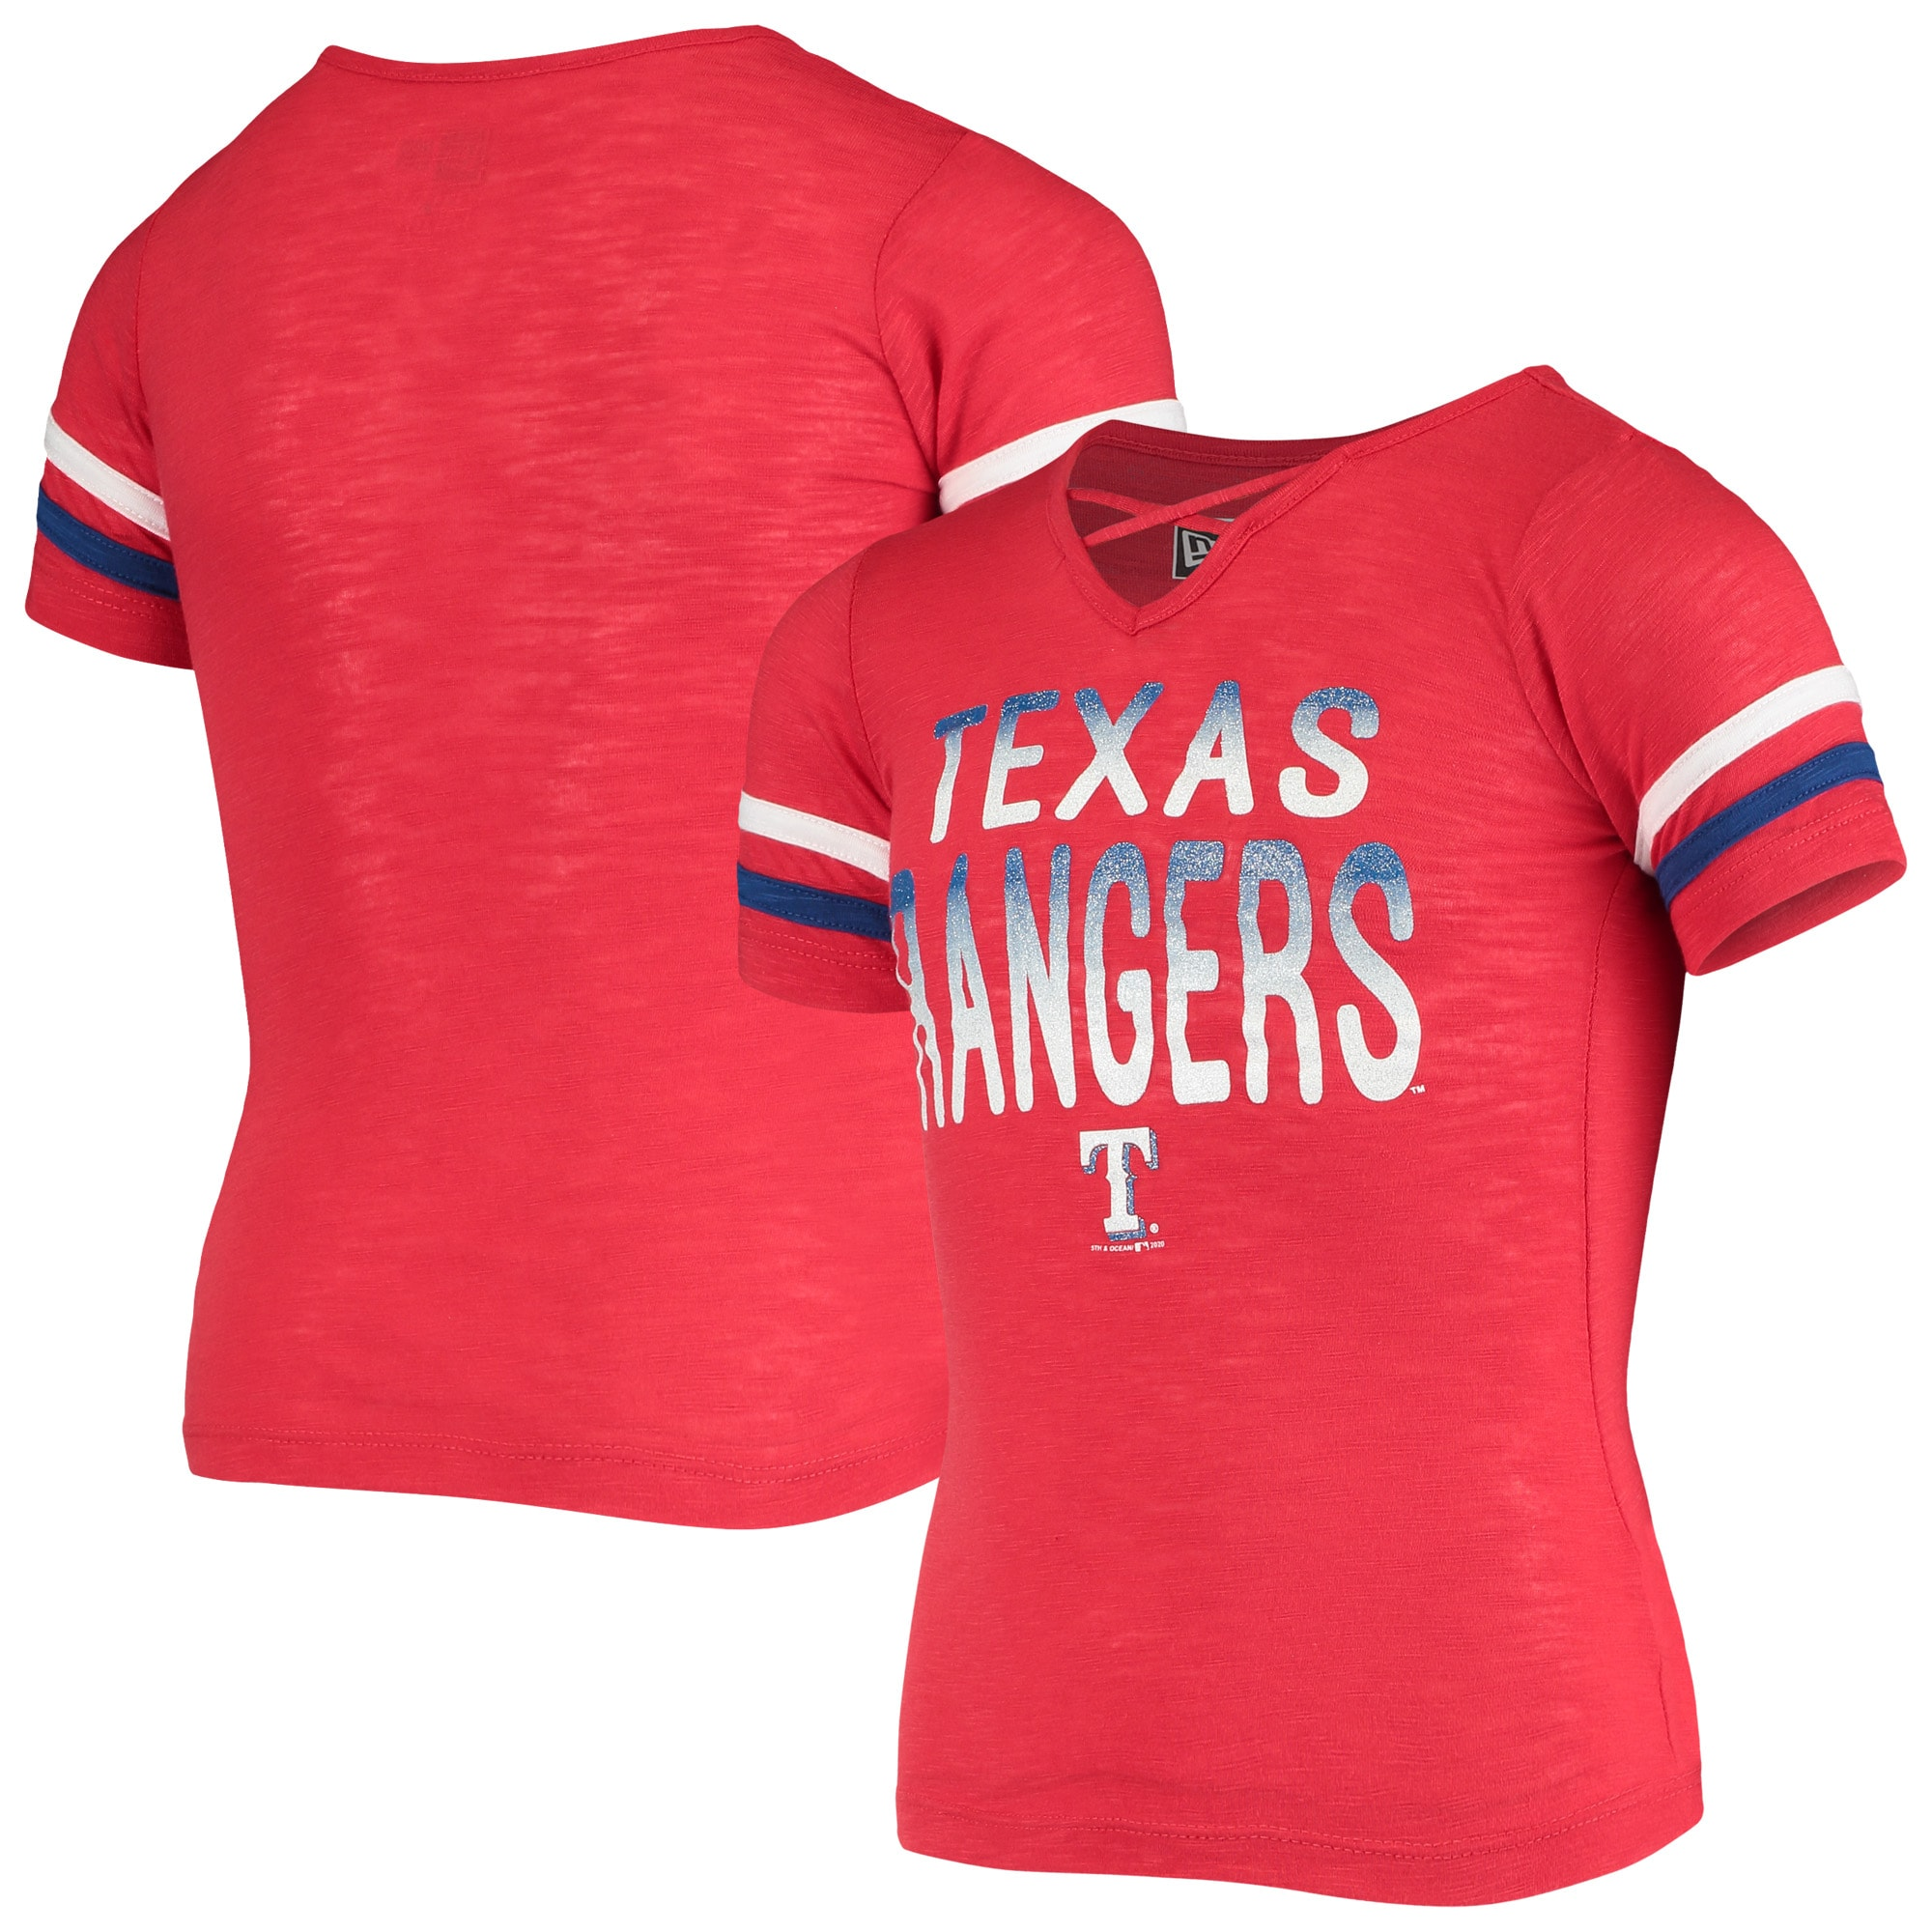 Texas Rangers New Era Girls Youth Slub Jersey V-Neck T-Shirt - Red